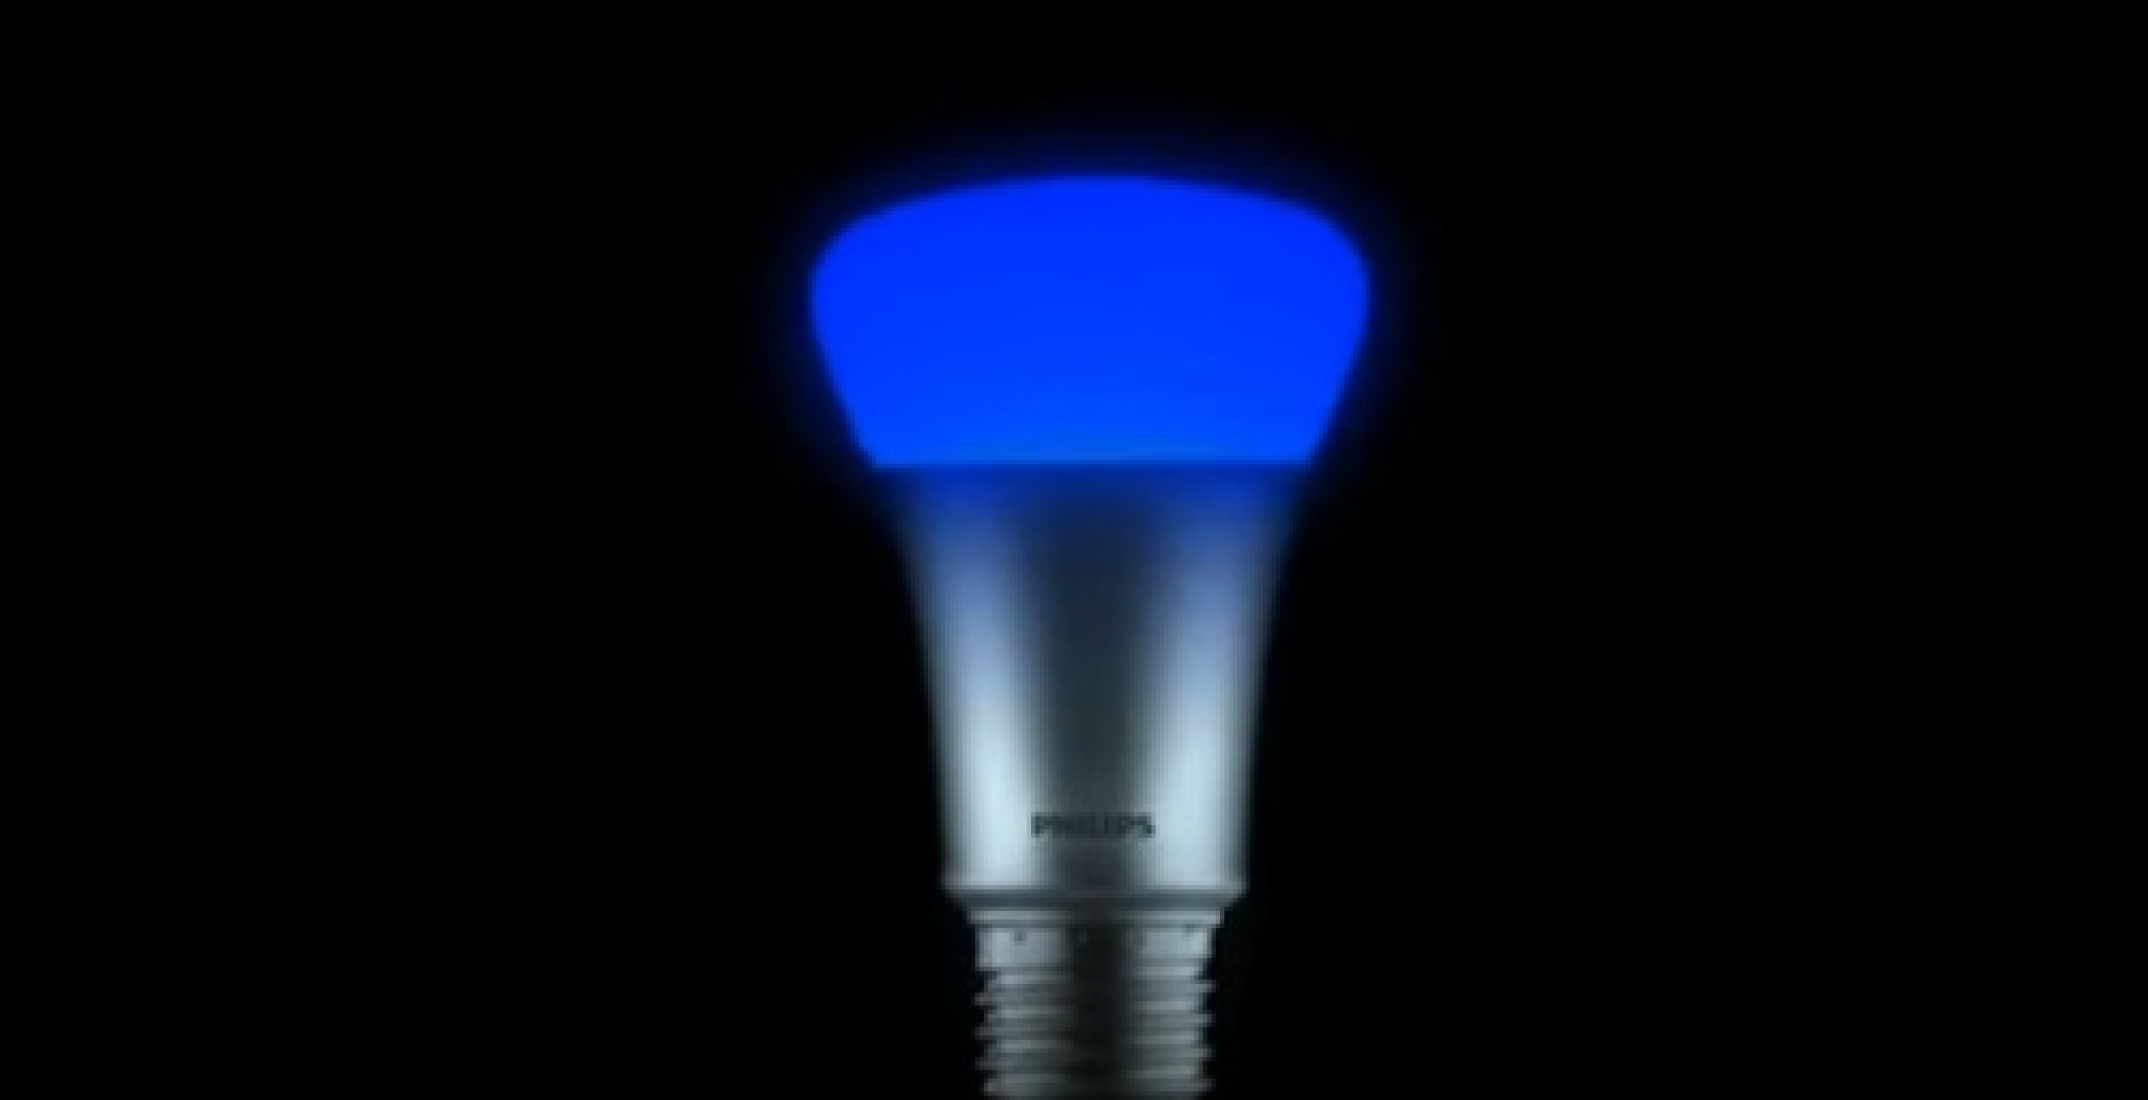 The 'World's Smartest Lightbulb' Illuminates In 16 Million Colors